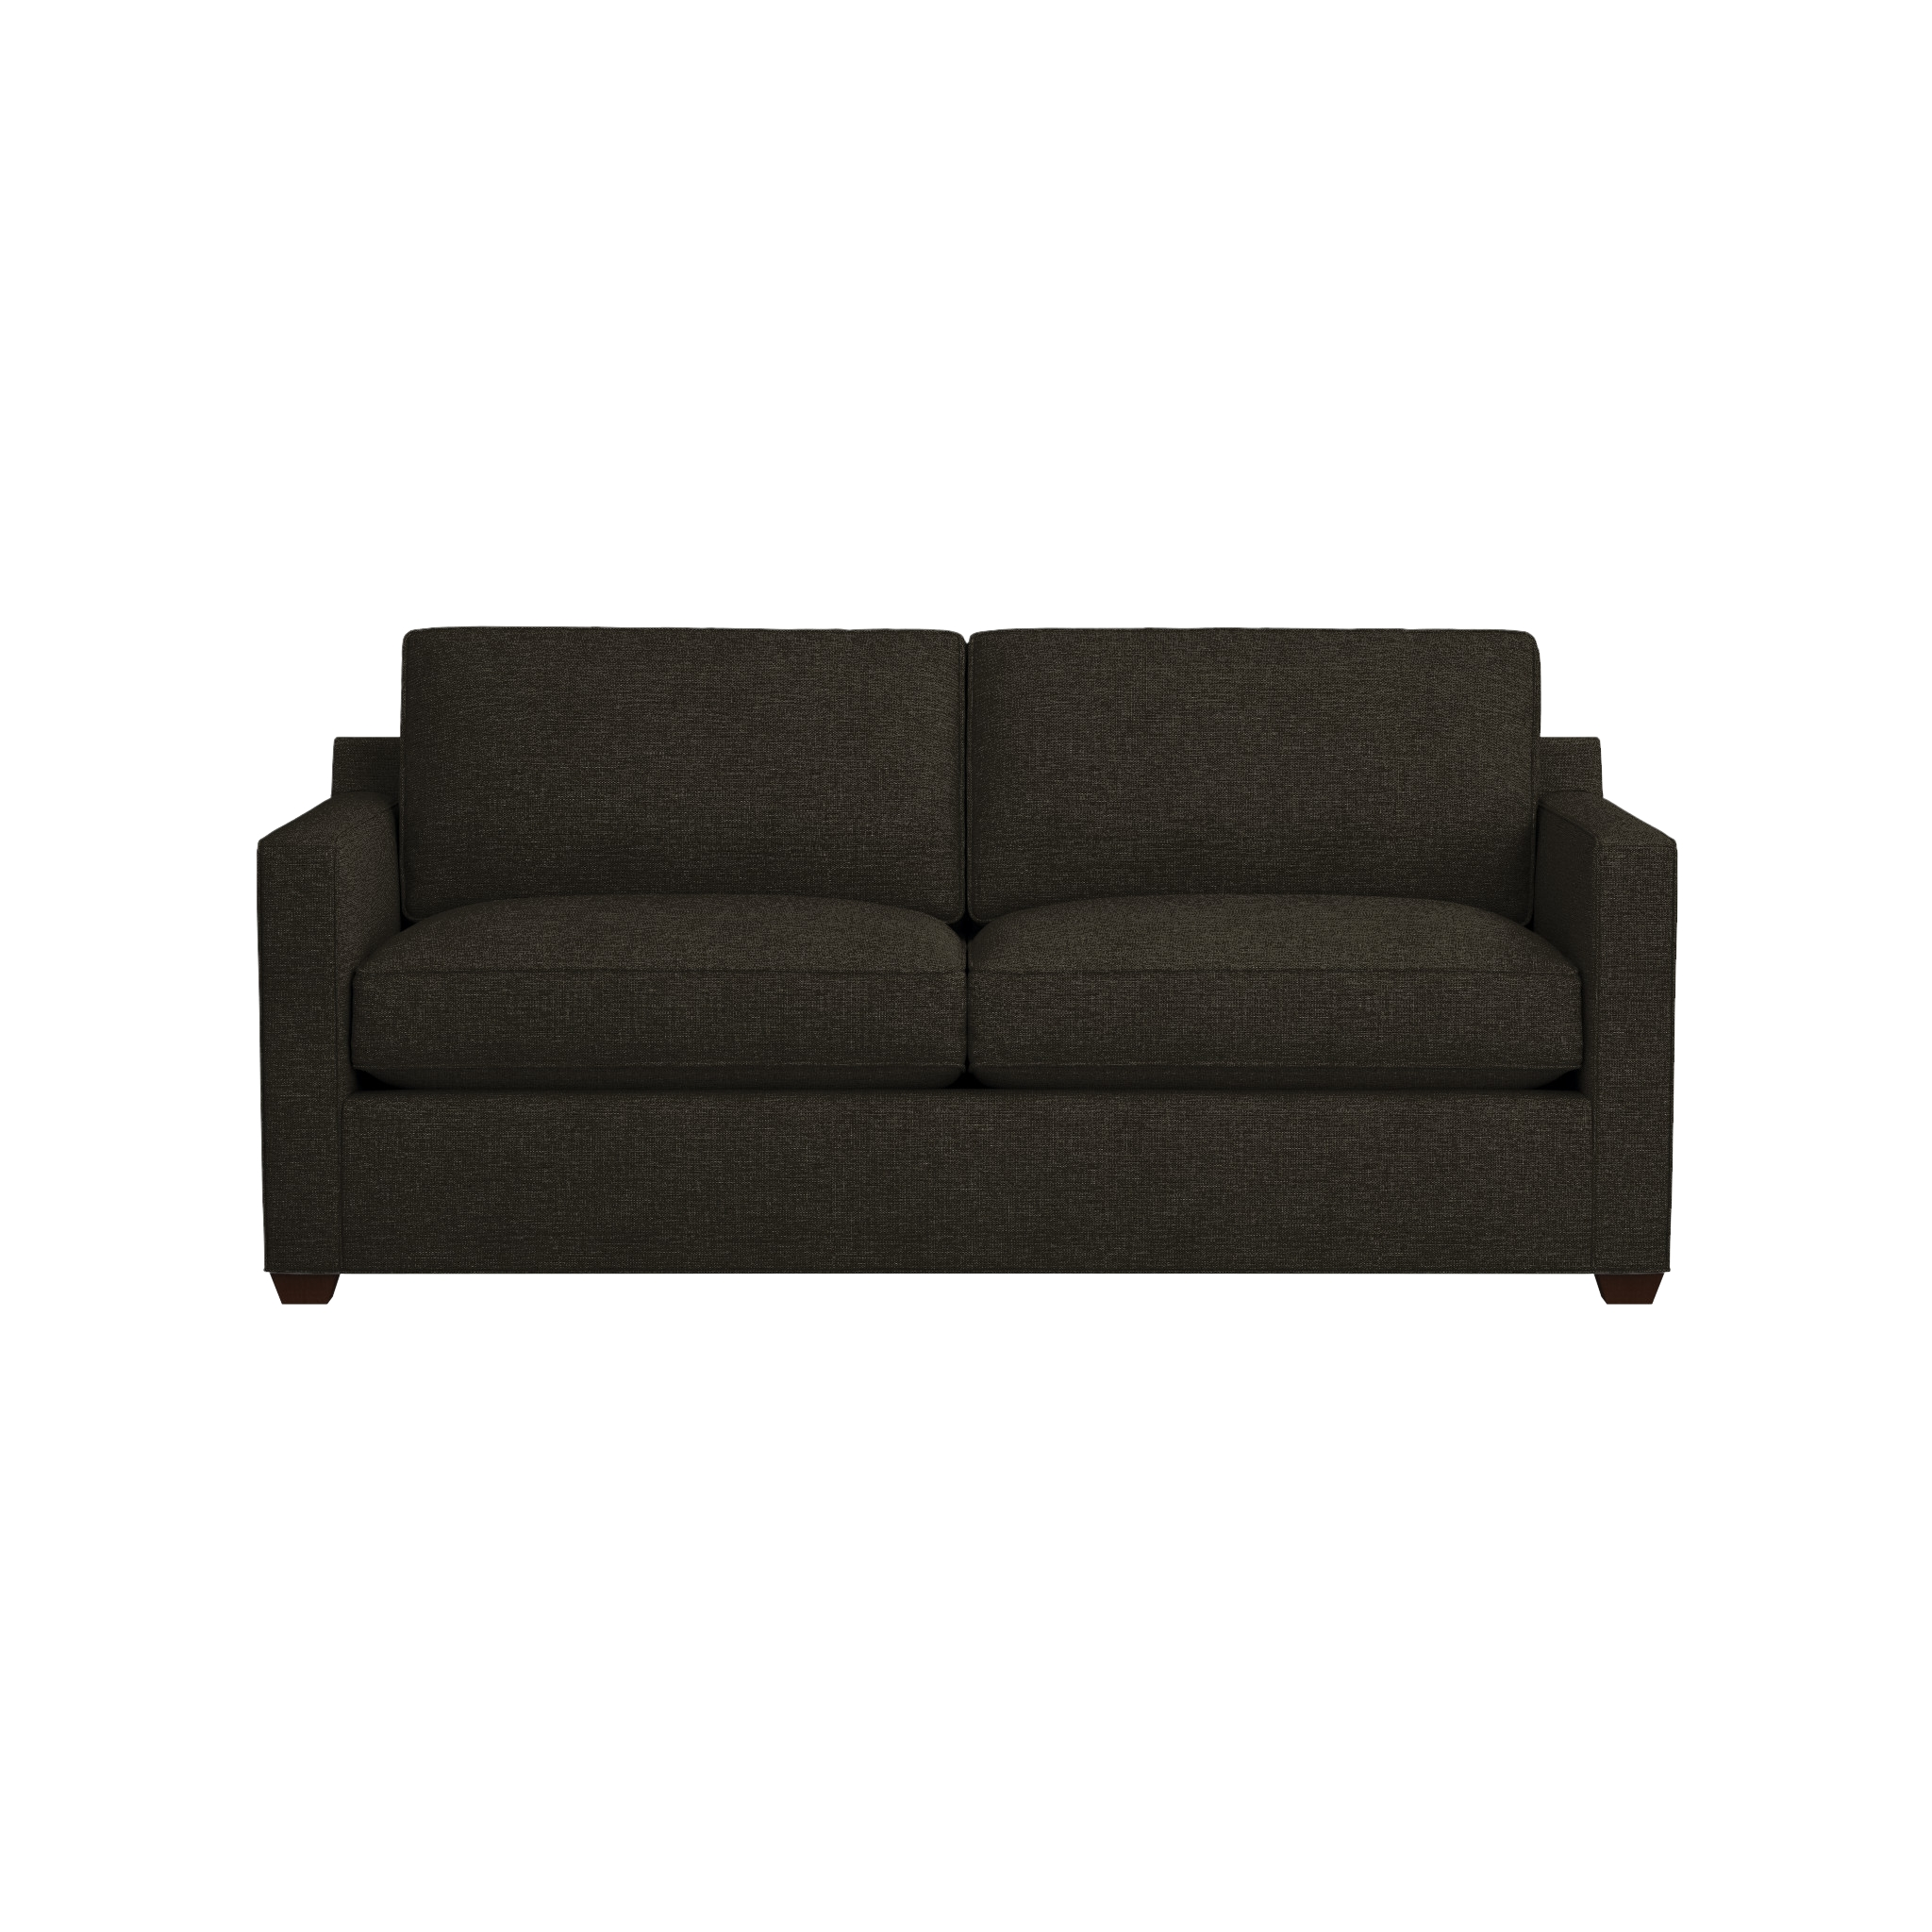 Davis Queen Sleeper Sofa | Crate And Barrel In Davis Sleeper Sofas (Image 1 of 20)